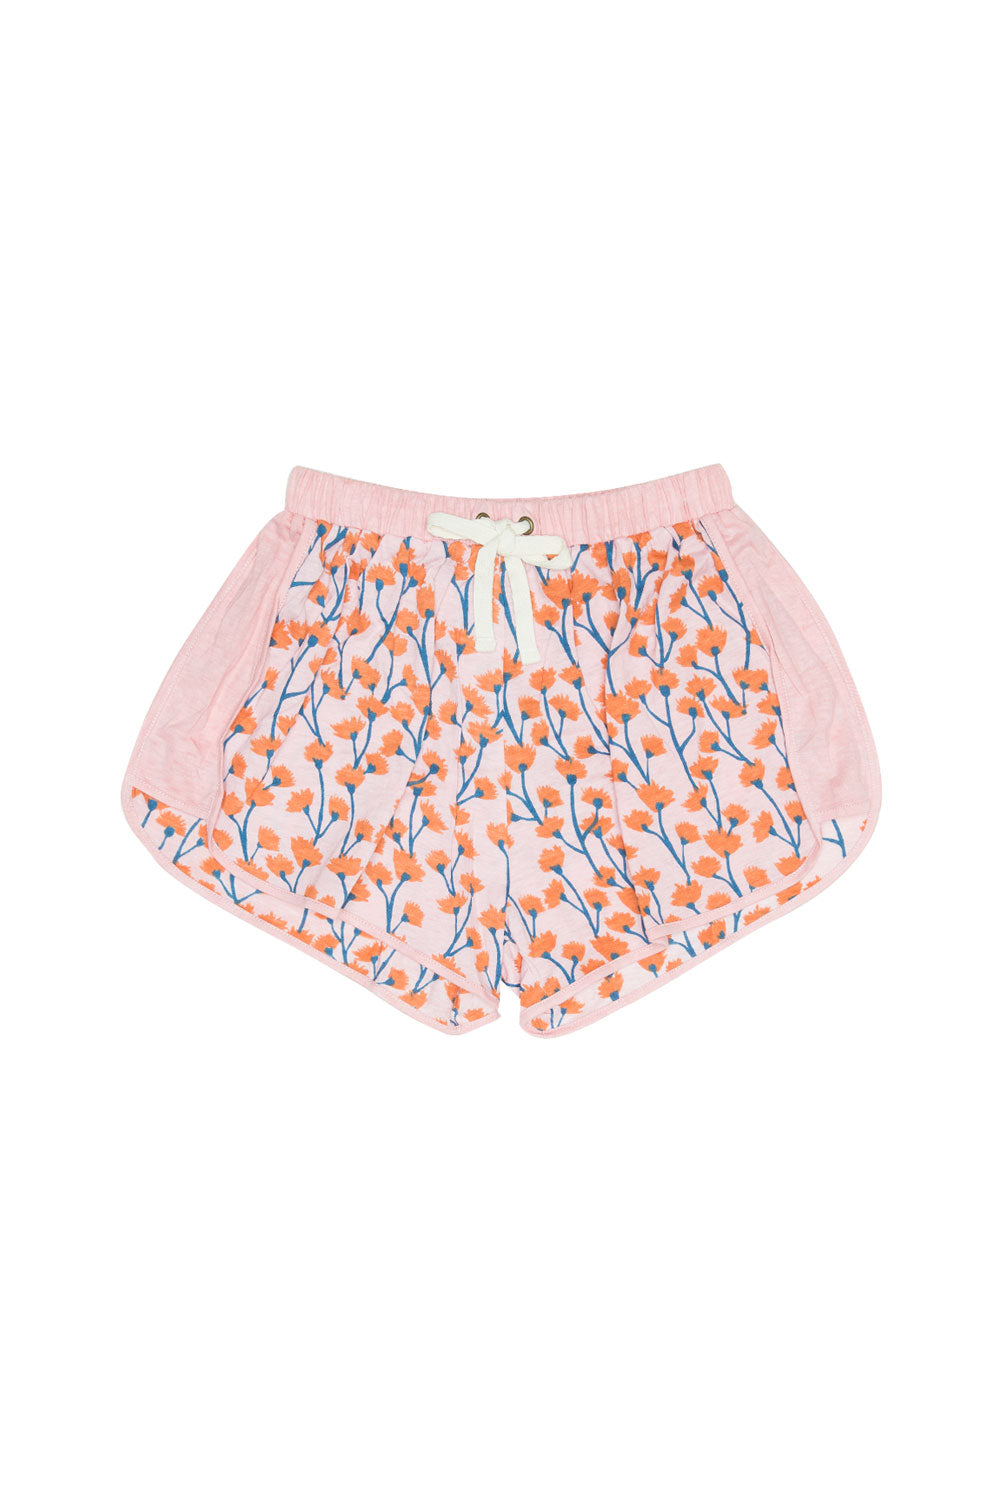 VINE SUMMER SHORT PINK